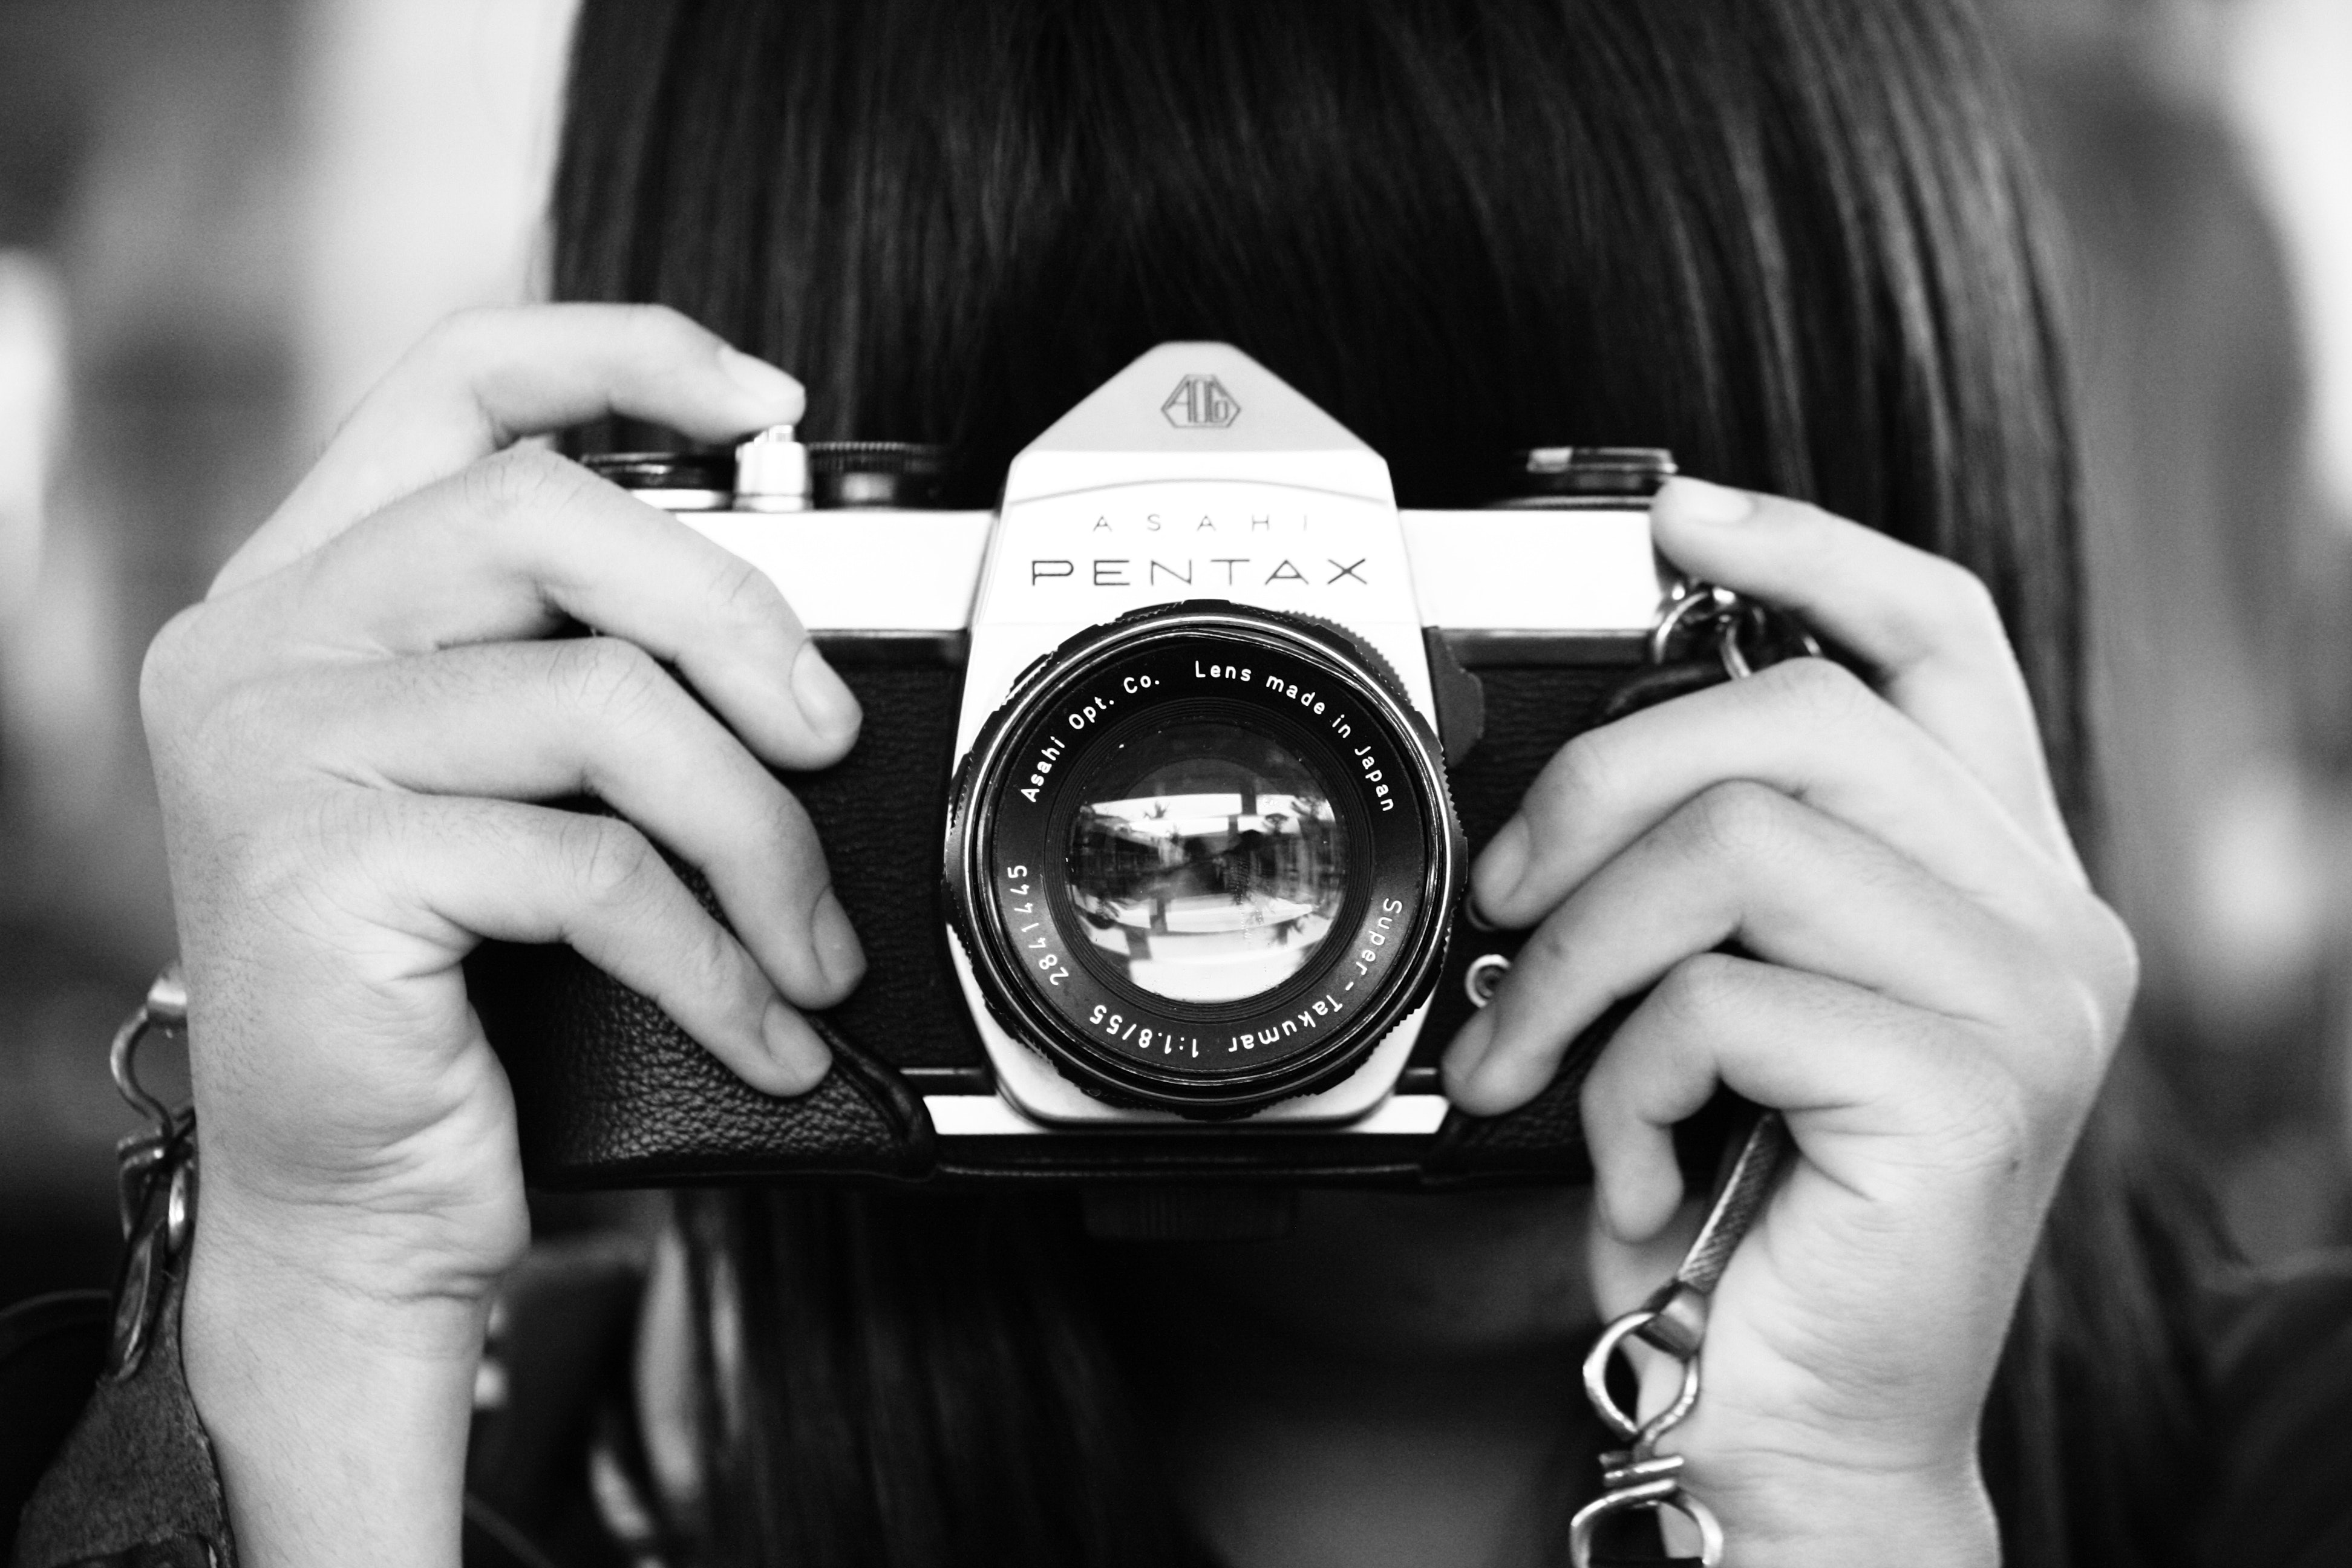 Woman Holding Dslr Camera in Grayscale Photography, Analog camera, Monochrome photography, Woman, Vintage, HQ Photo